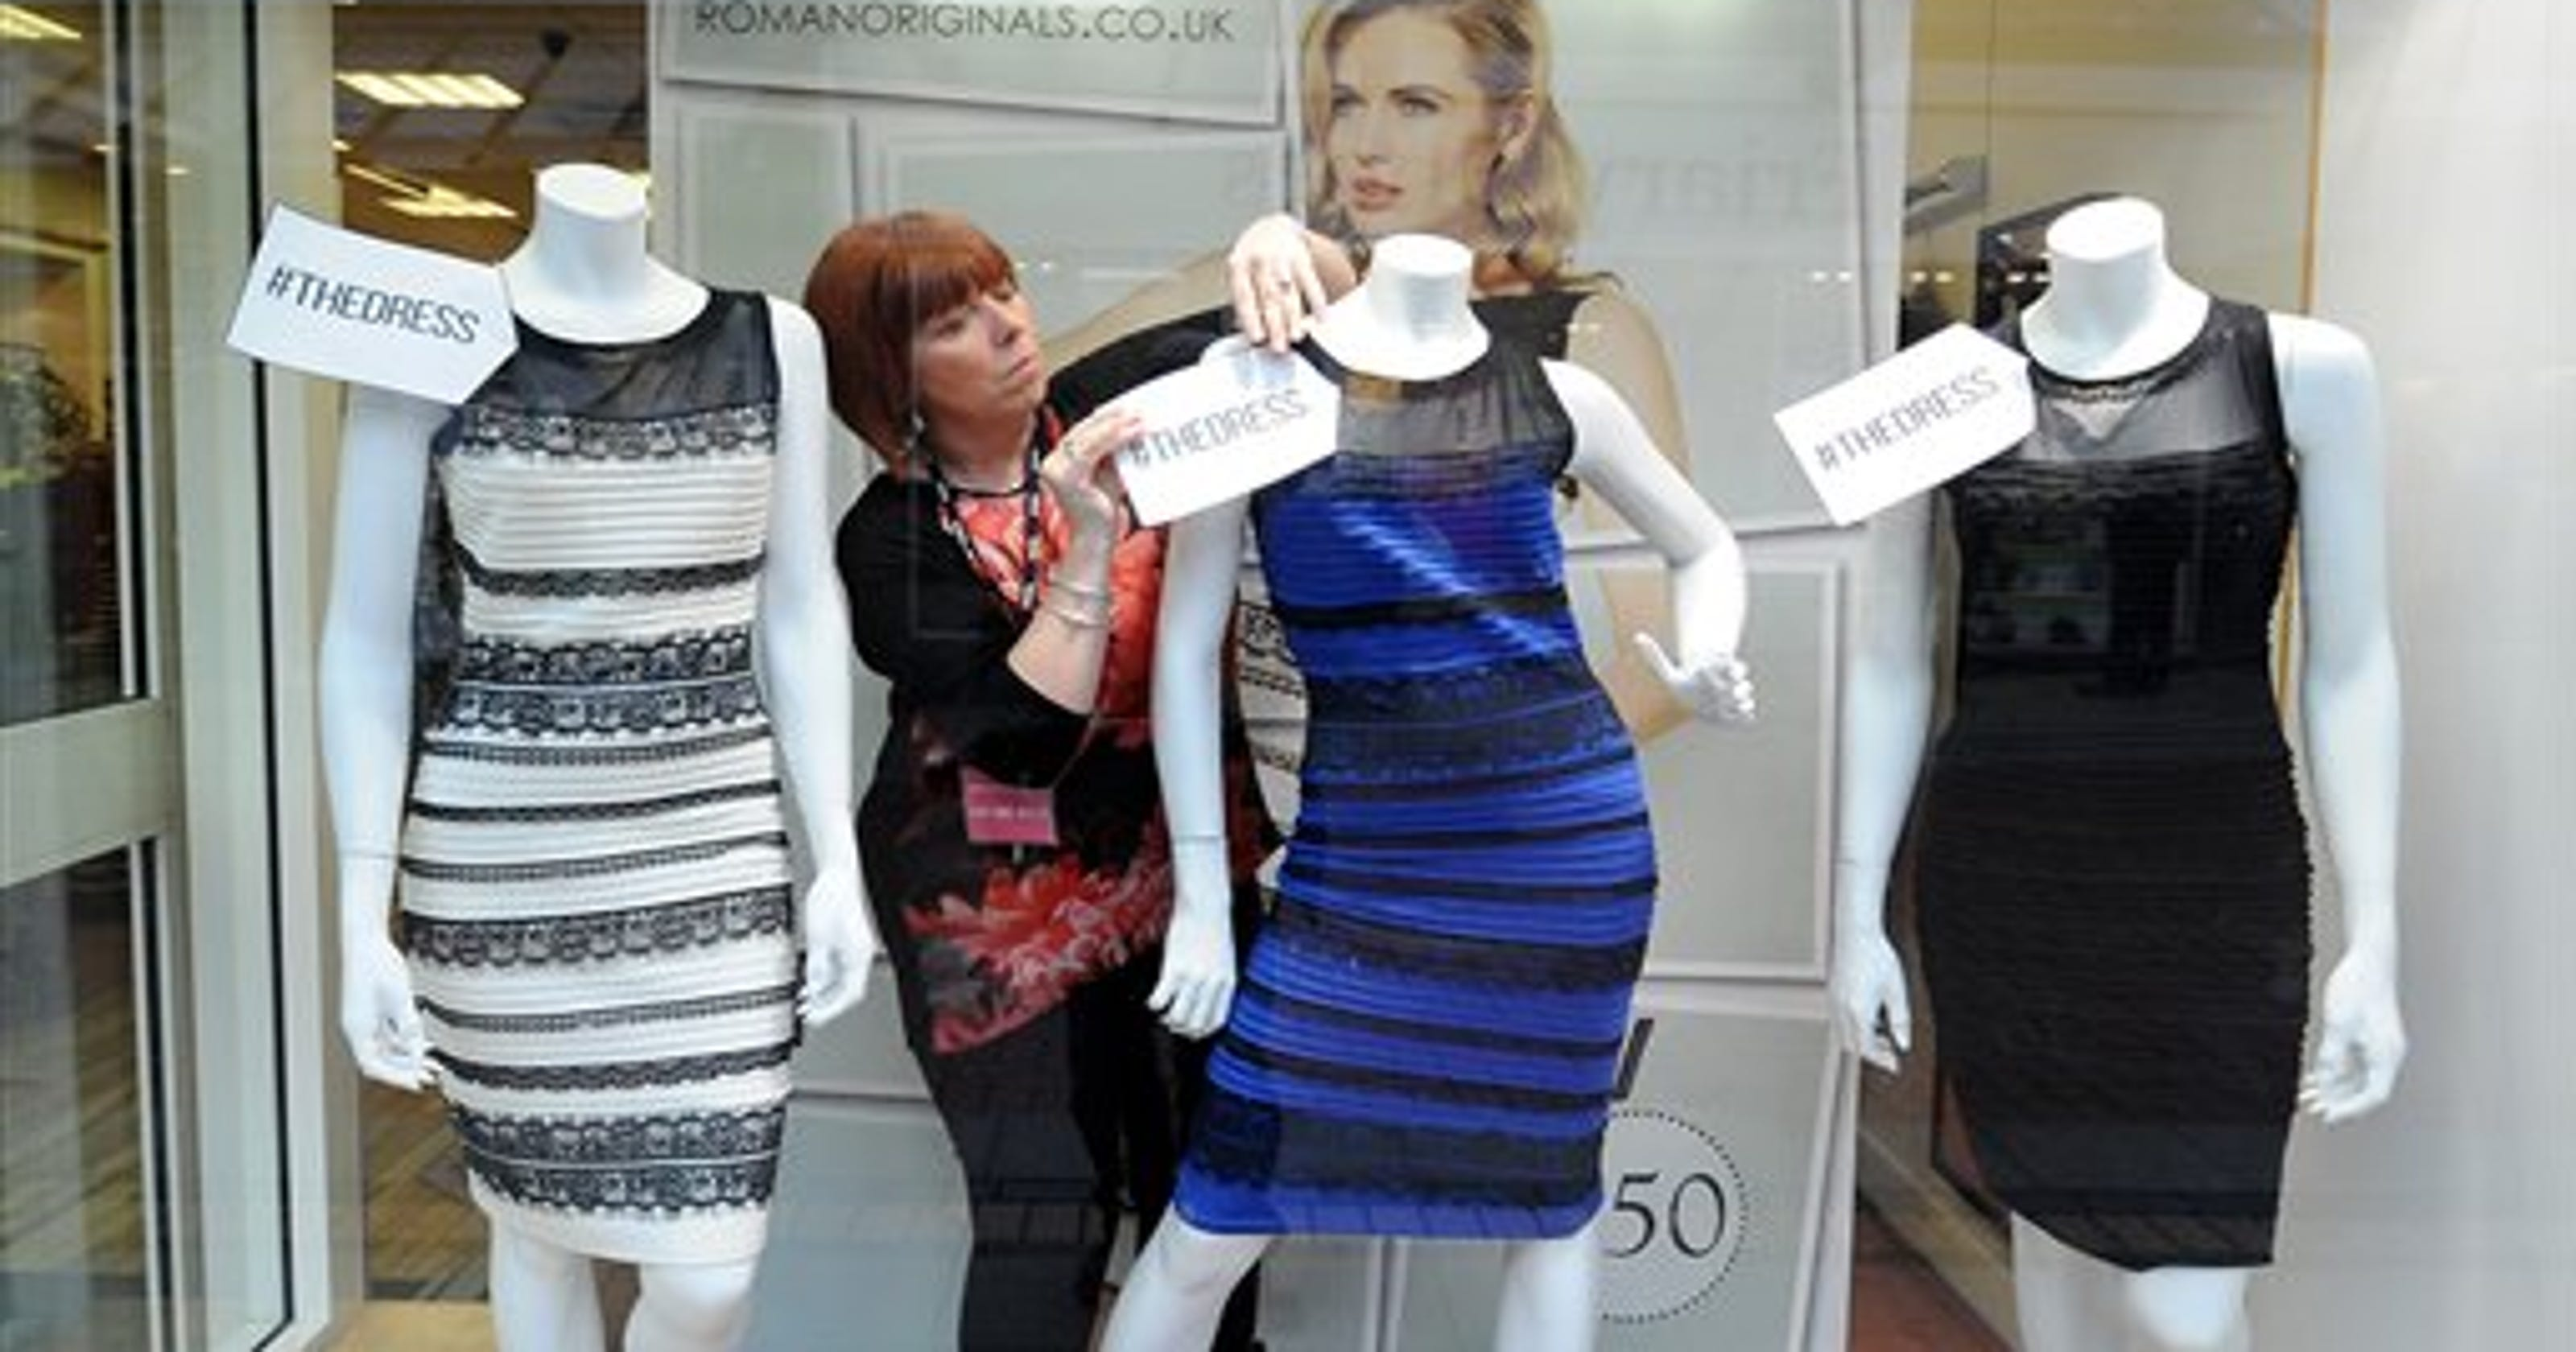 cf767d277c63 Debates rage over color of dress photographed in rare light